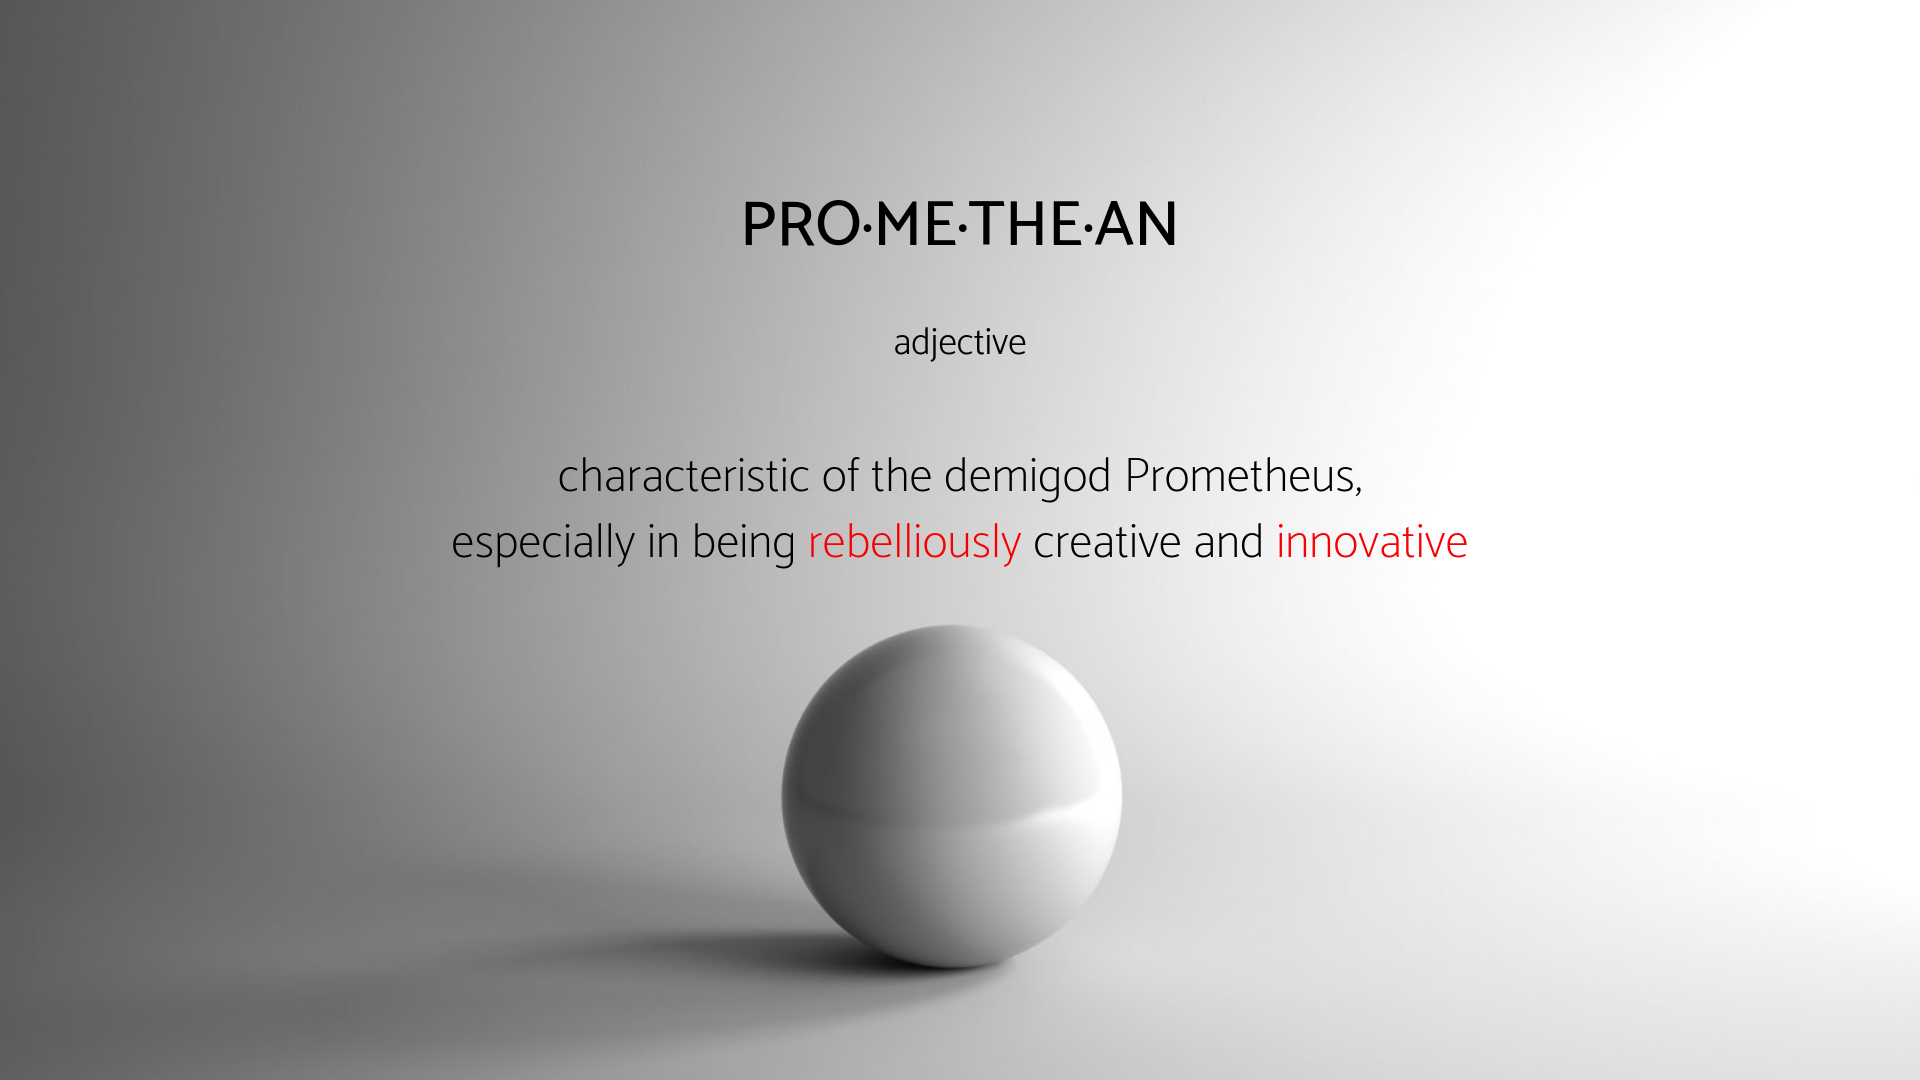 Copy of PRO·ME·THE·AN adjective relating to or characteristic of the demigod Prometheus, especially in being rebelliously creative and innovative.png